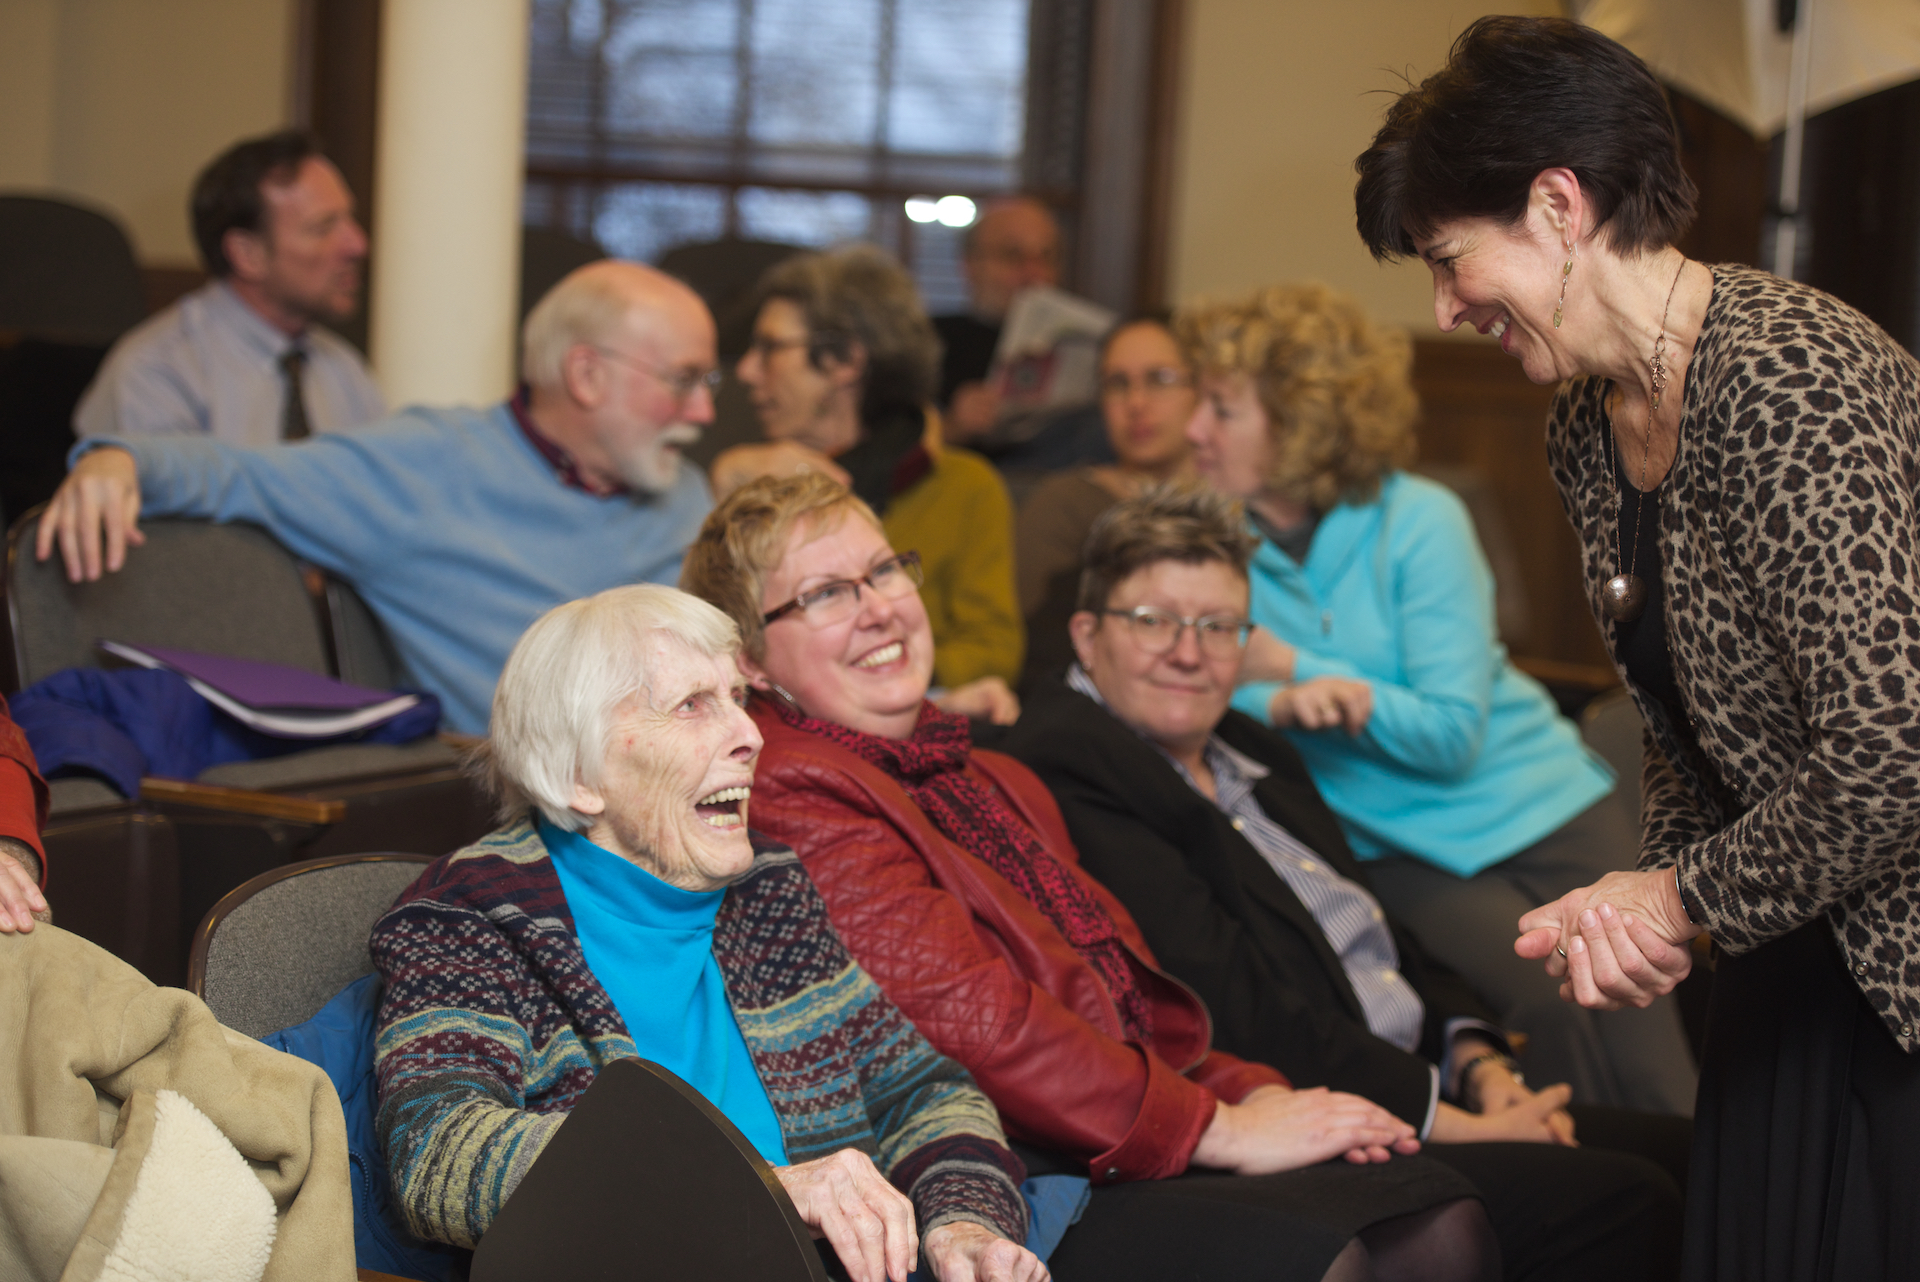 Former Dean Ann Hartman seated beside Dawn Faucher and greeted by Associate Dean Irene Rodriguez-Martin, at Dean Yoshioka's lecture on January 26, 2015